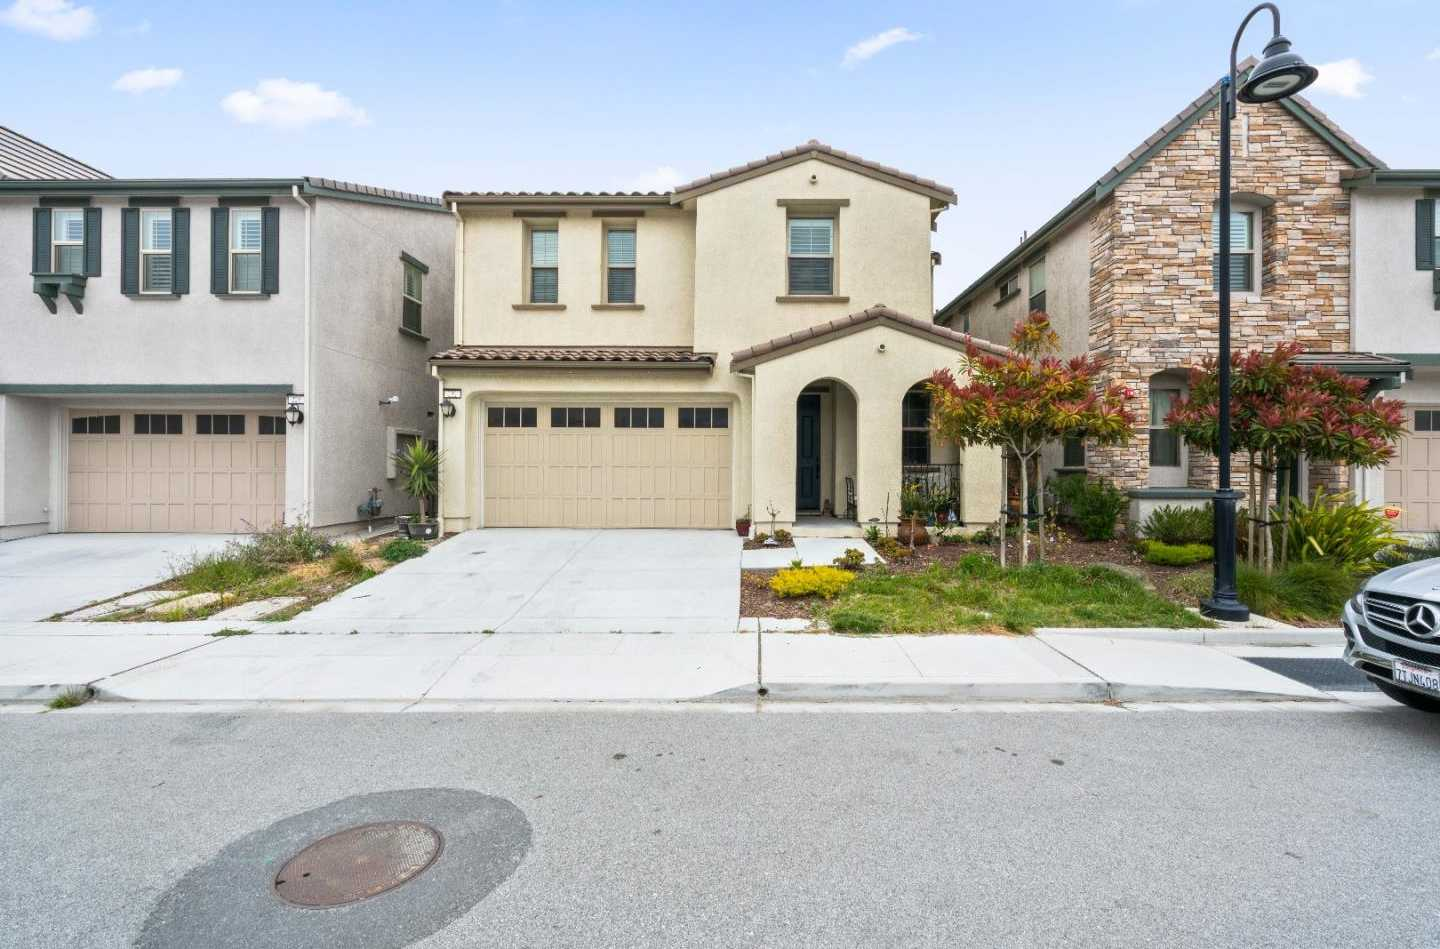 232 Crestview CIR DALY CITY, CA 94015